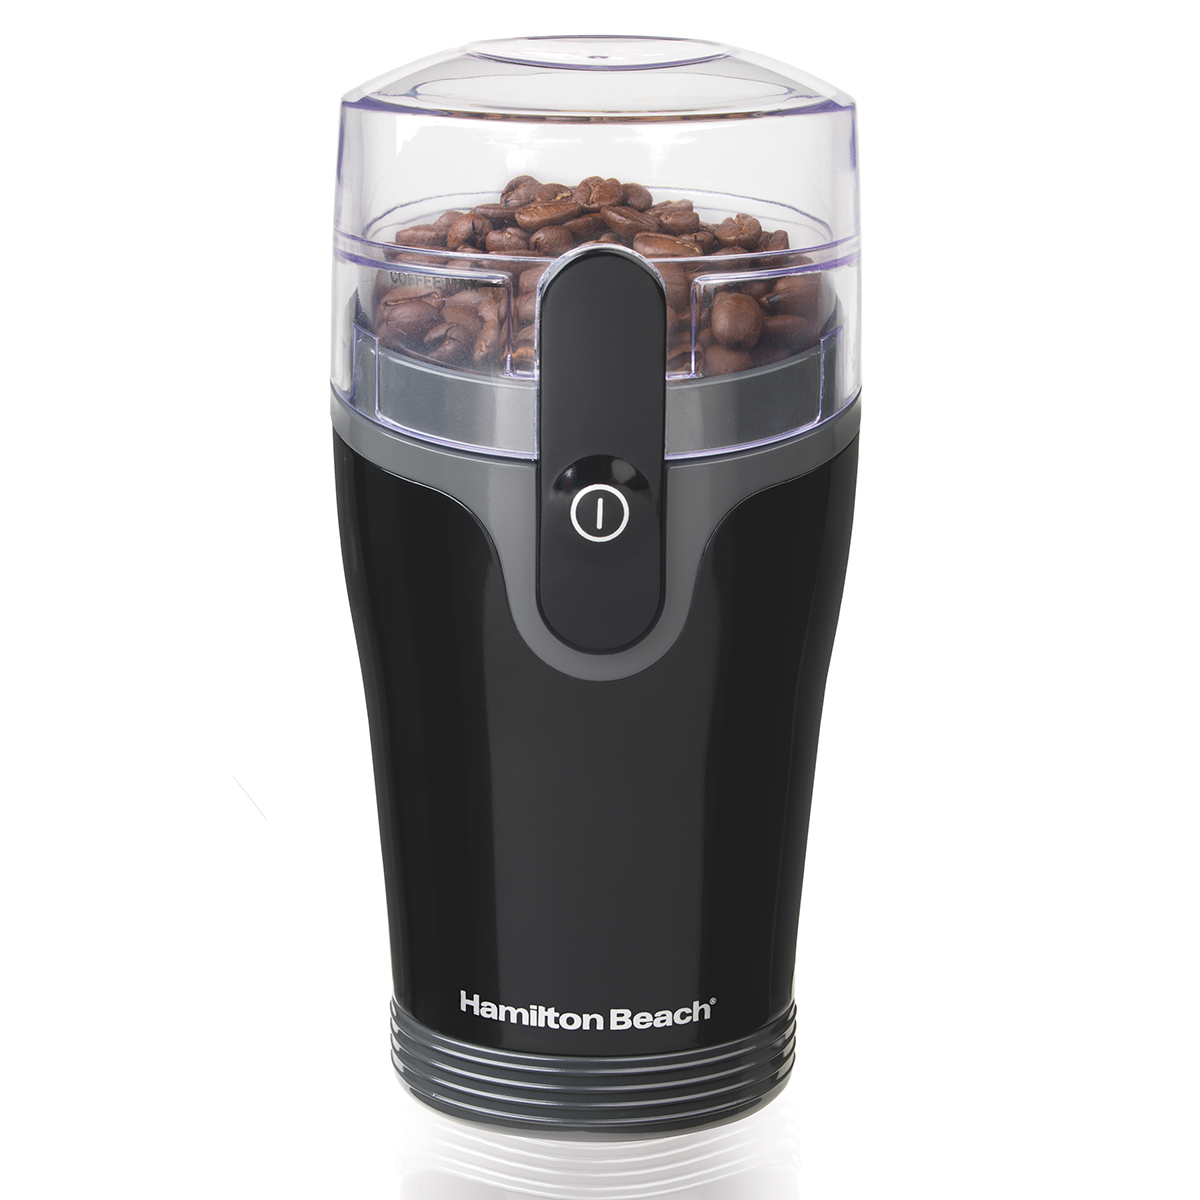 Fresh Grind™ Coffee Grinder, Removable Grinding Chamber, Black (80335R)